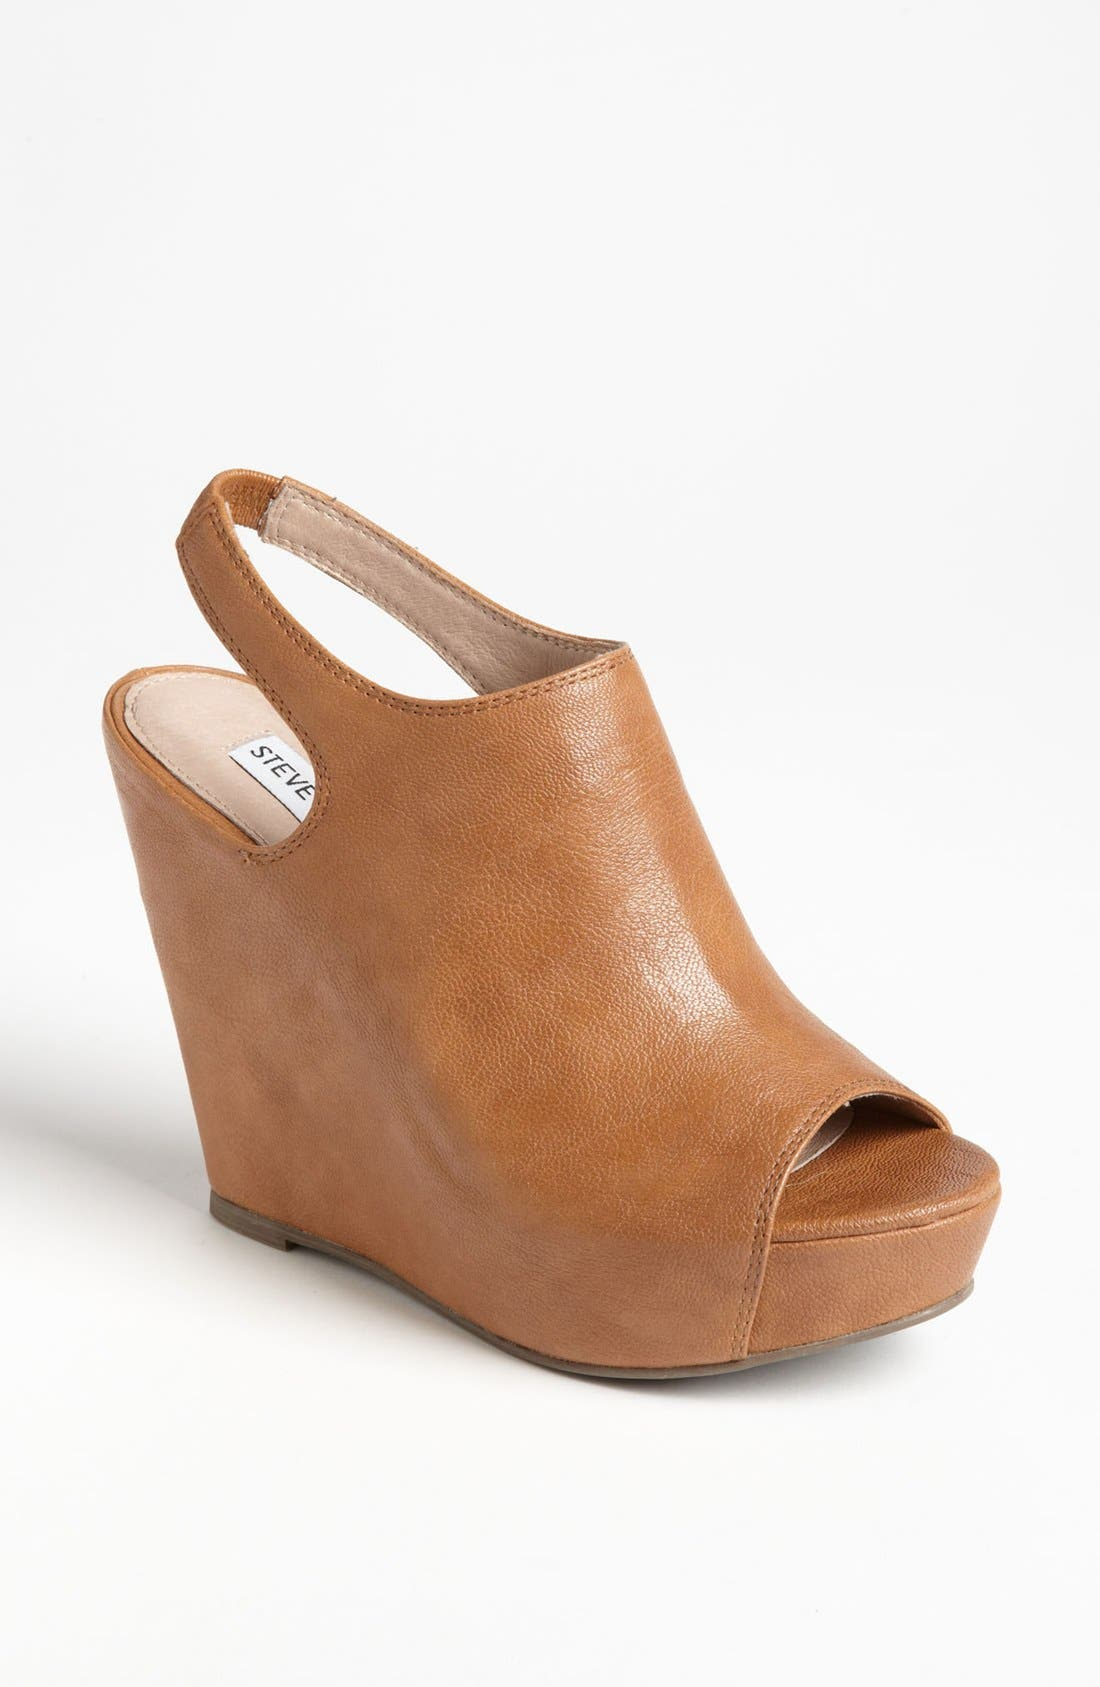 Main Image - Steve Madden 'Barcley' Wedge